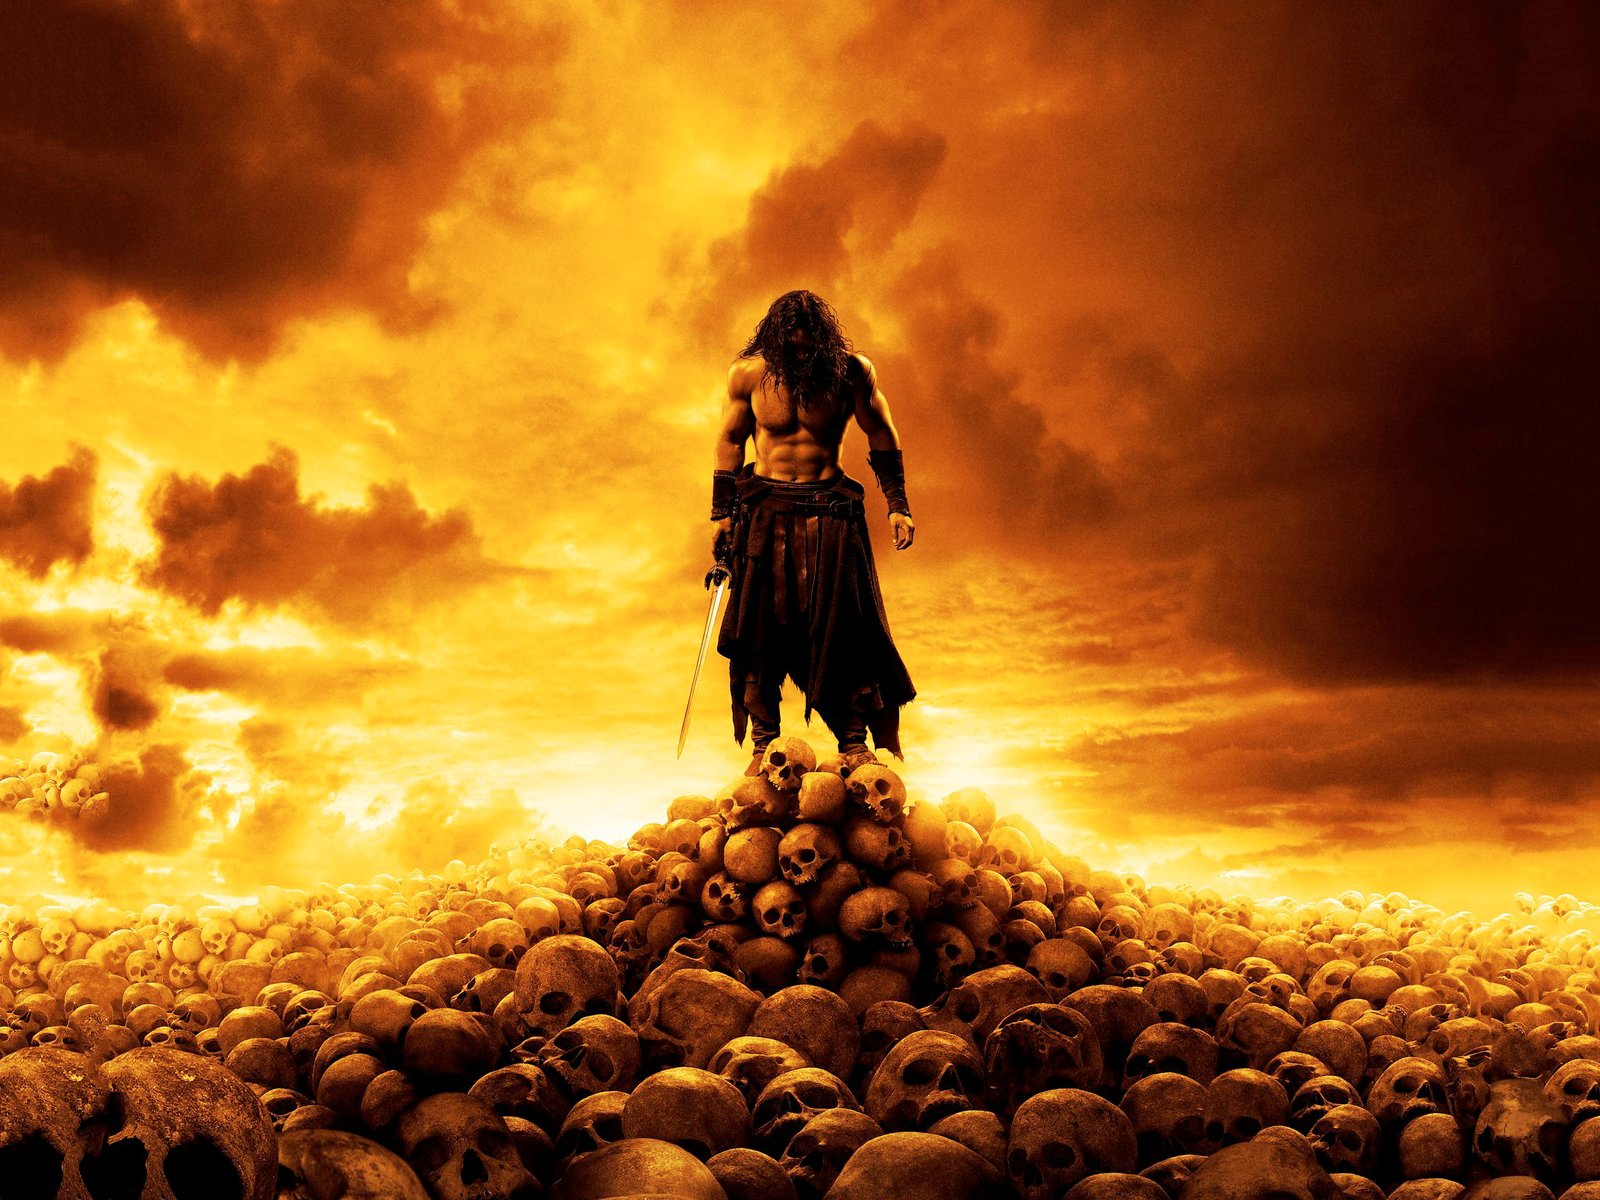 Exclusive Conan The Barbarian 3D Wallpapers   Movie Wallpapers 1600x1200